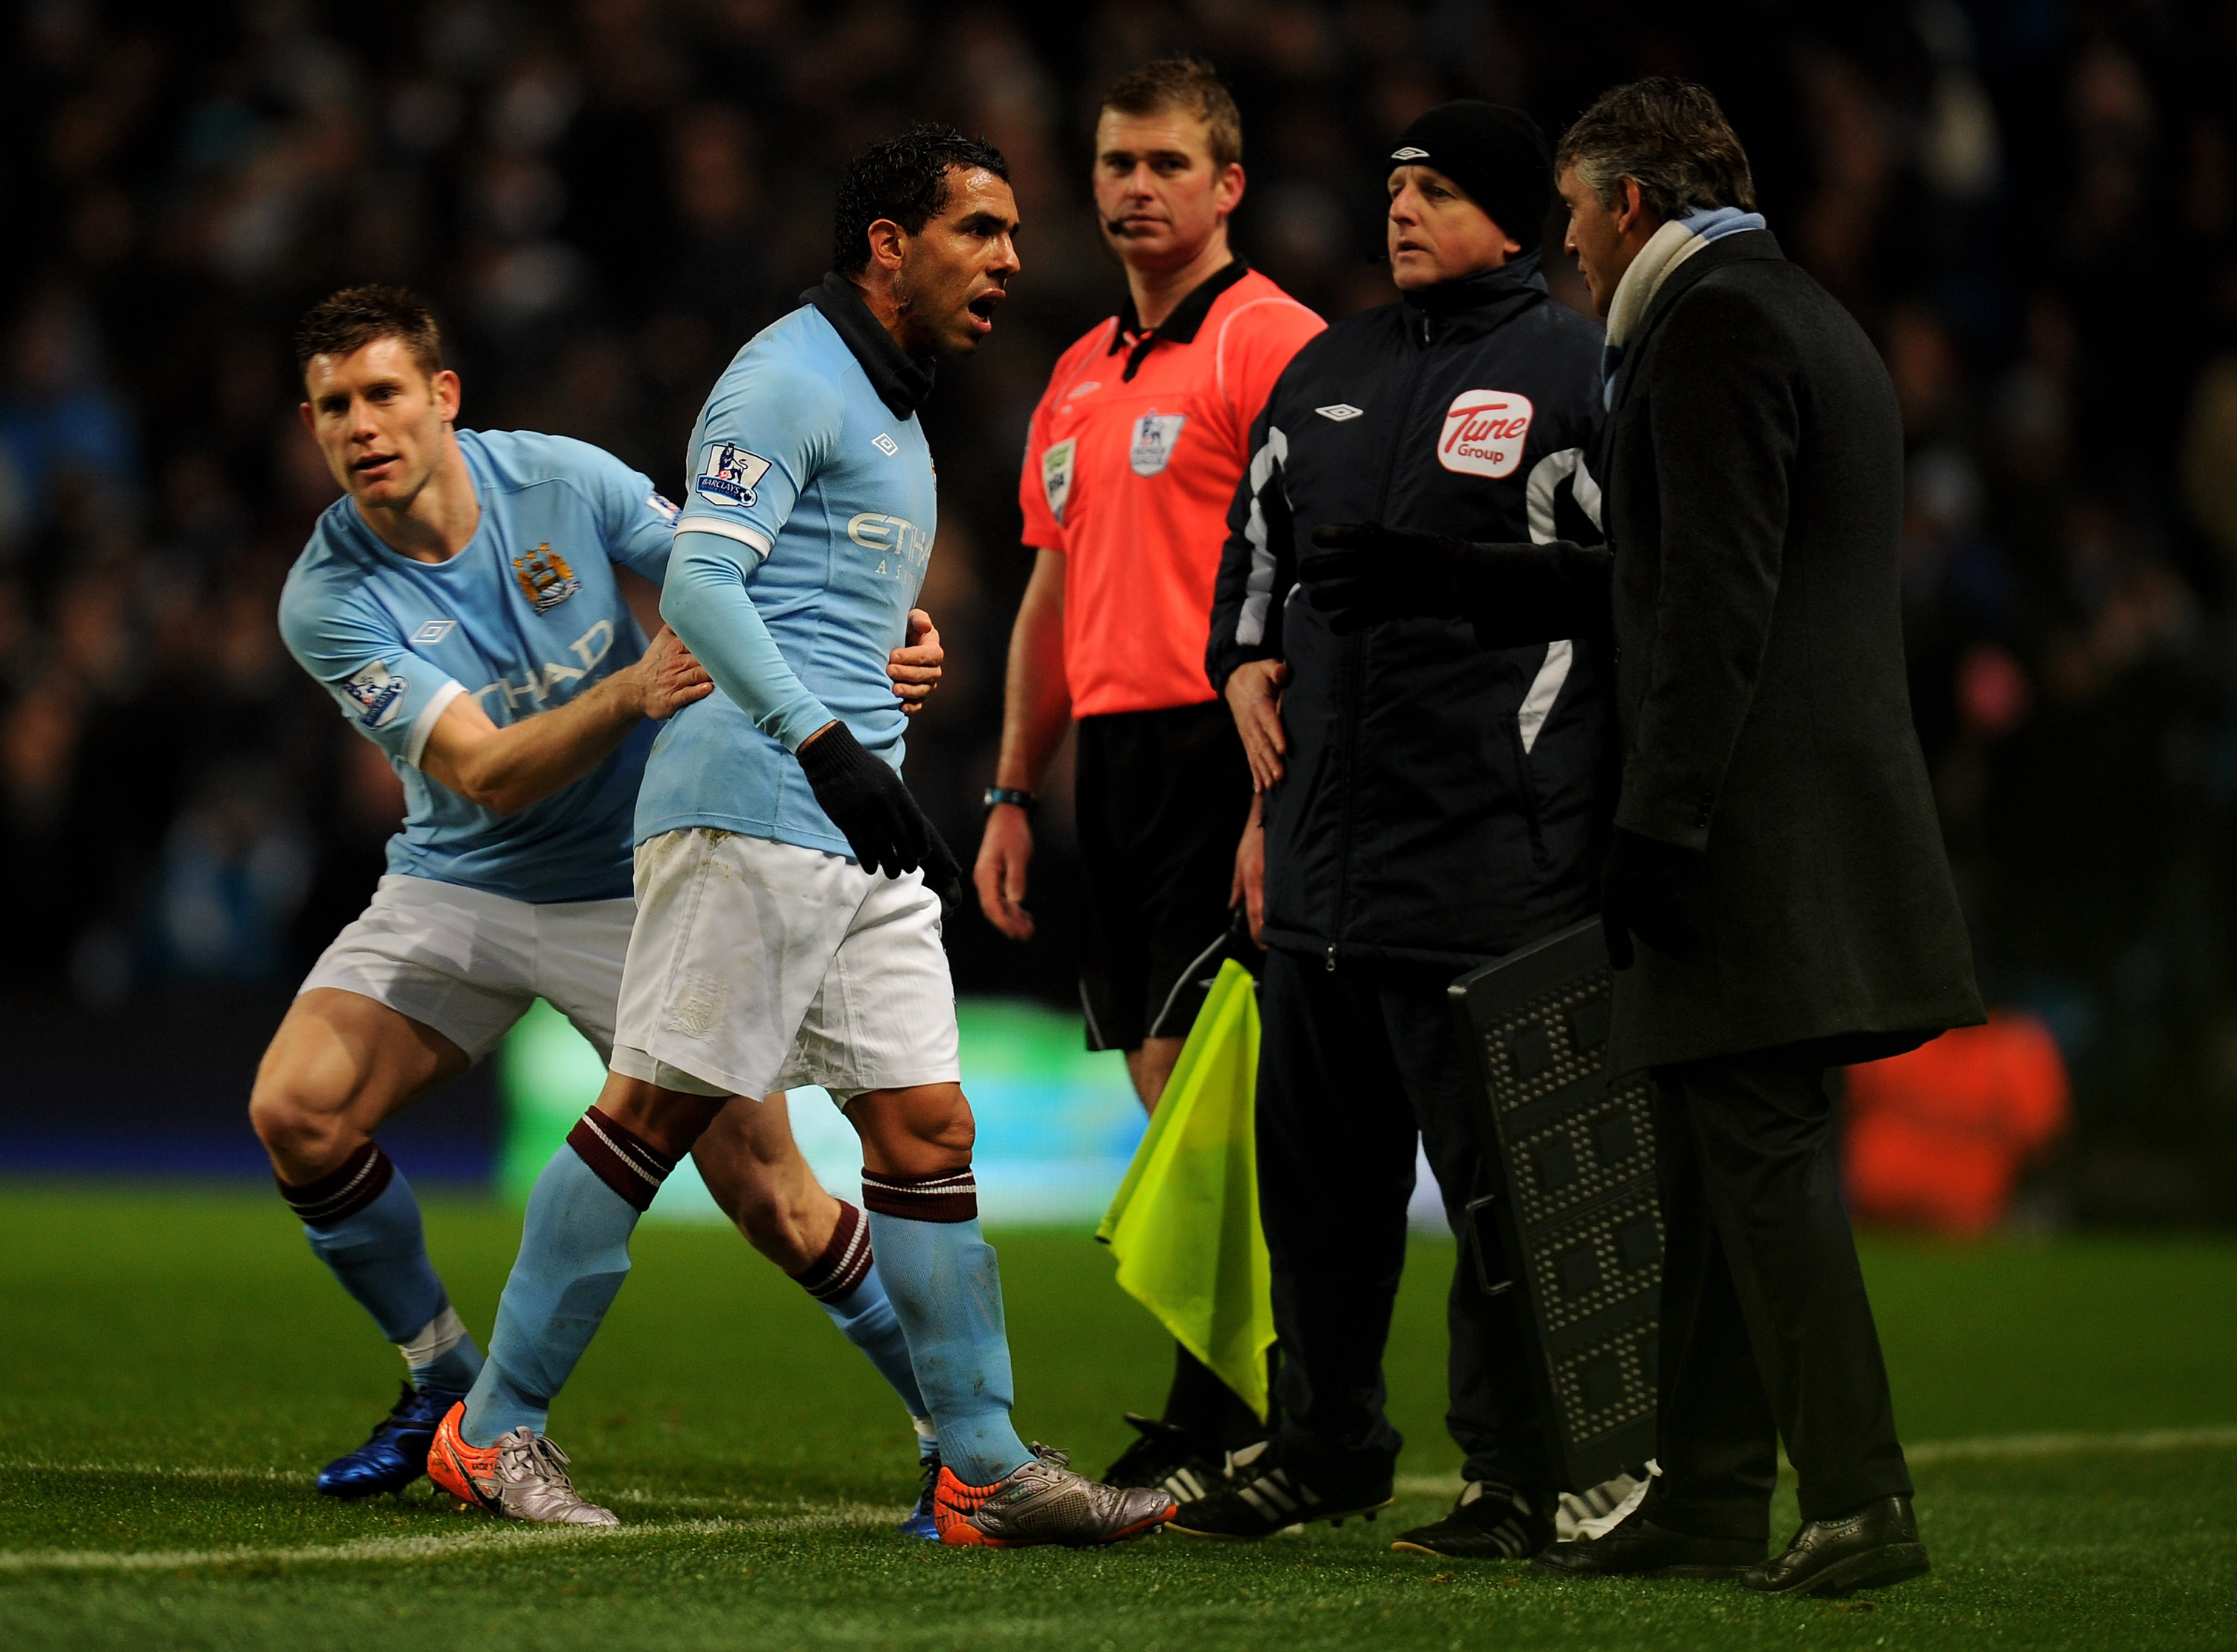 MANCHESTER, UNITED KINGDOM - DECEMBER 04:   Carlos Tevez of Manchester City has words with Manchester City Manager Roberto Mancini after being substituted for team mate James Milner during the Barclays Premier League match between Manchester City and Bolt